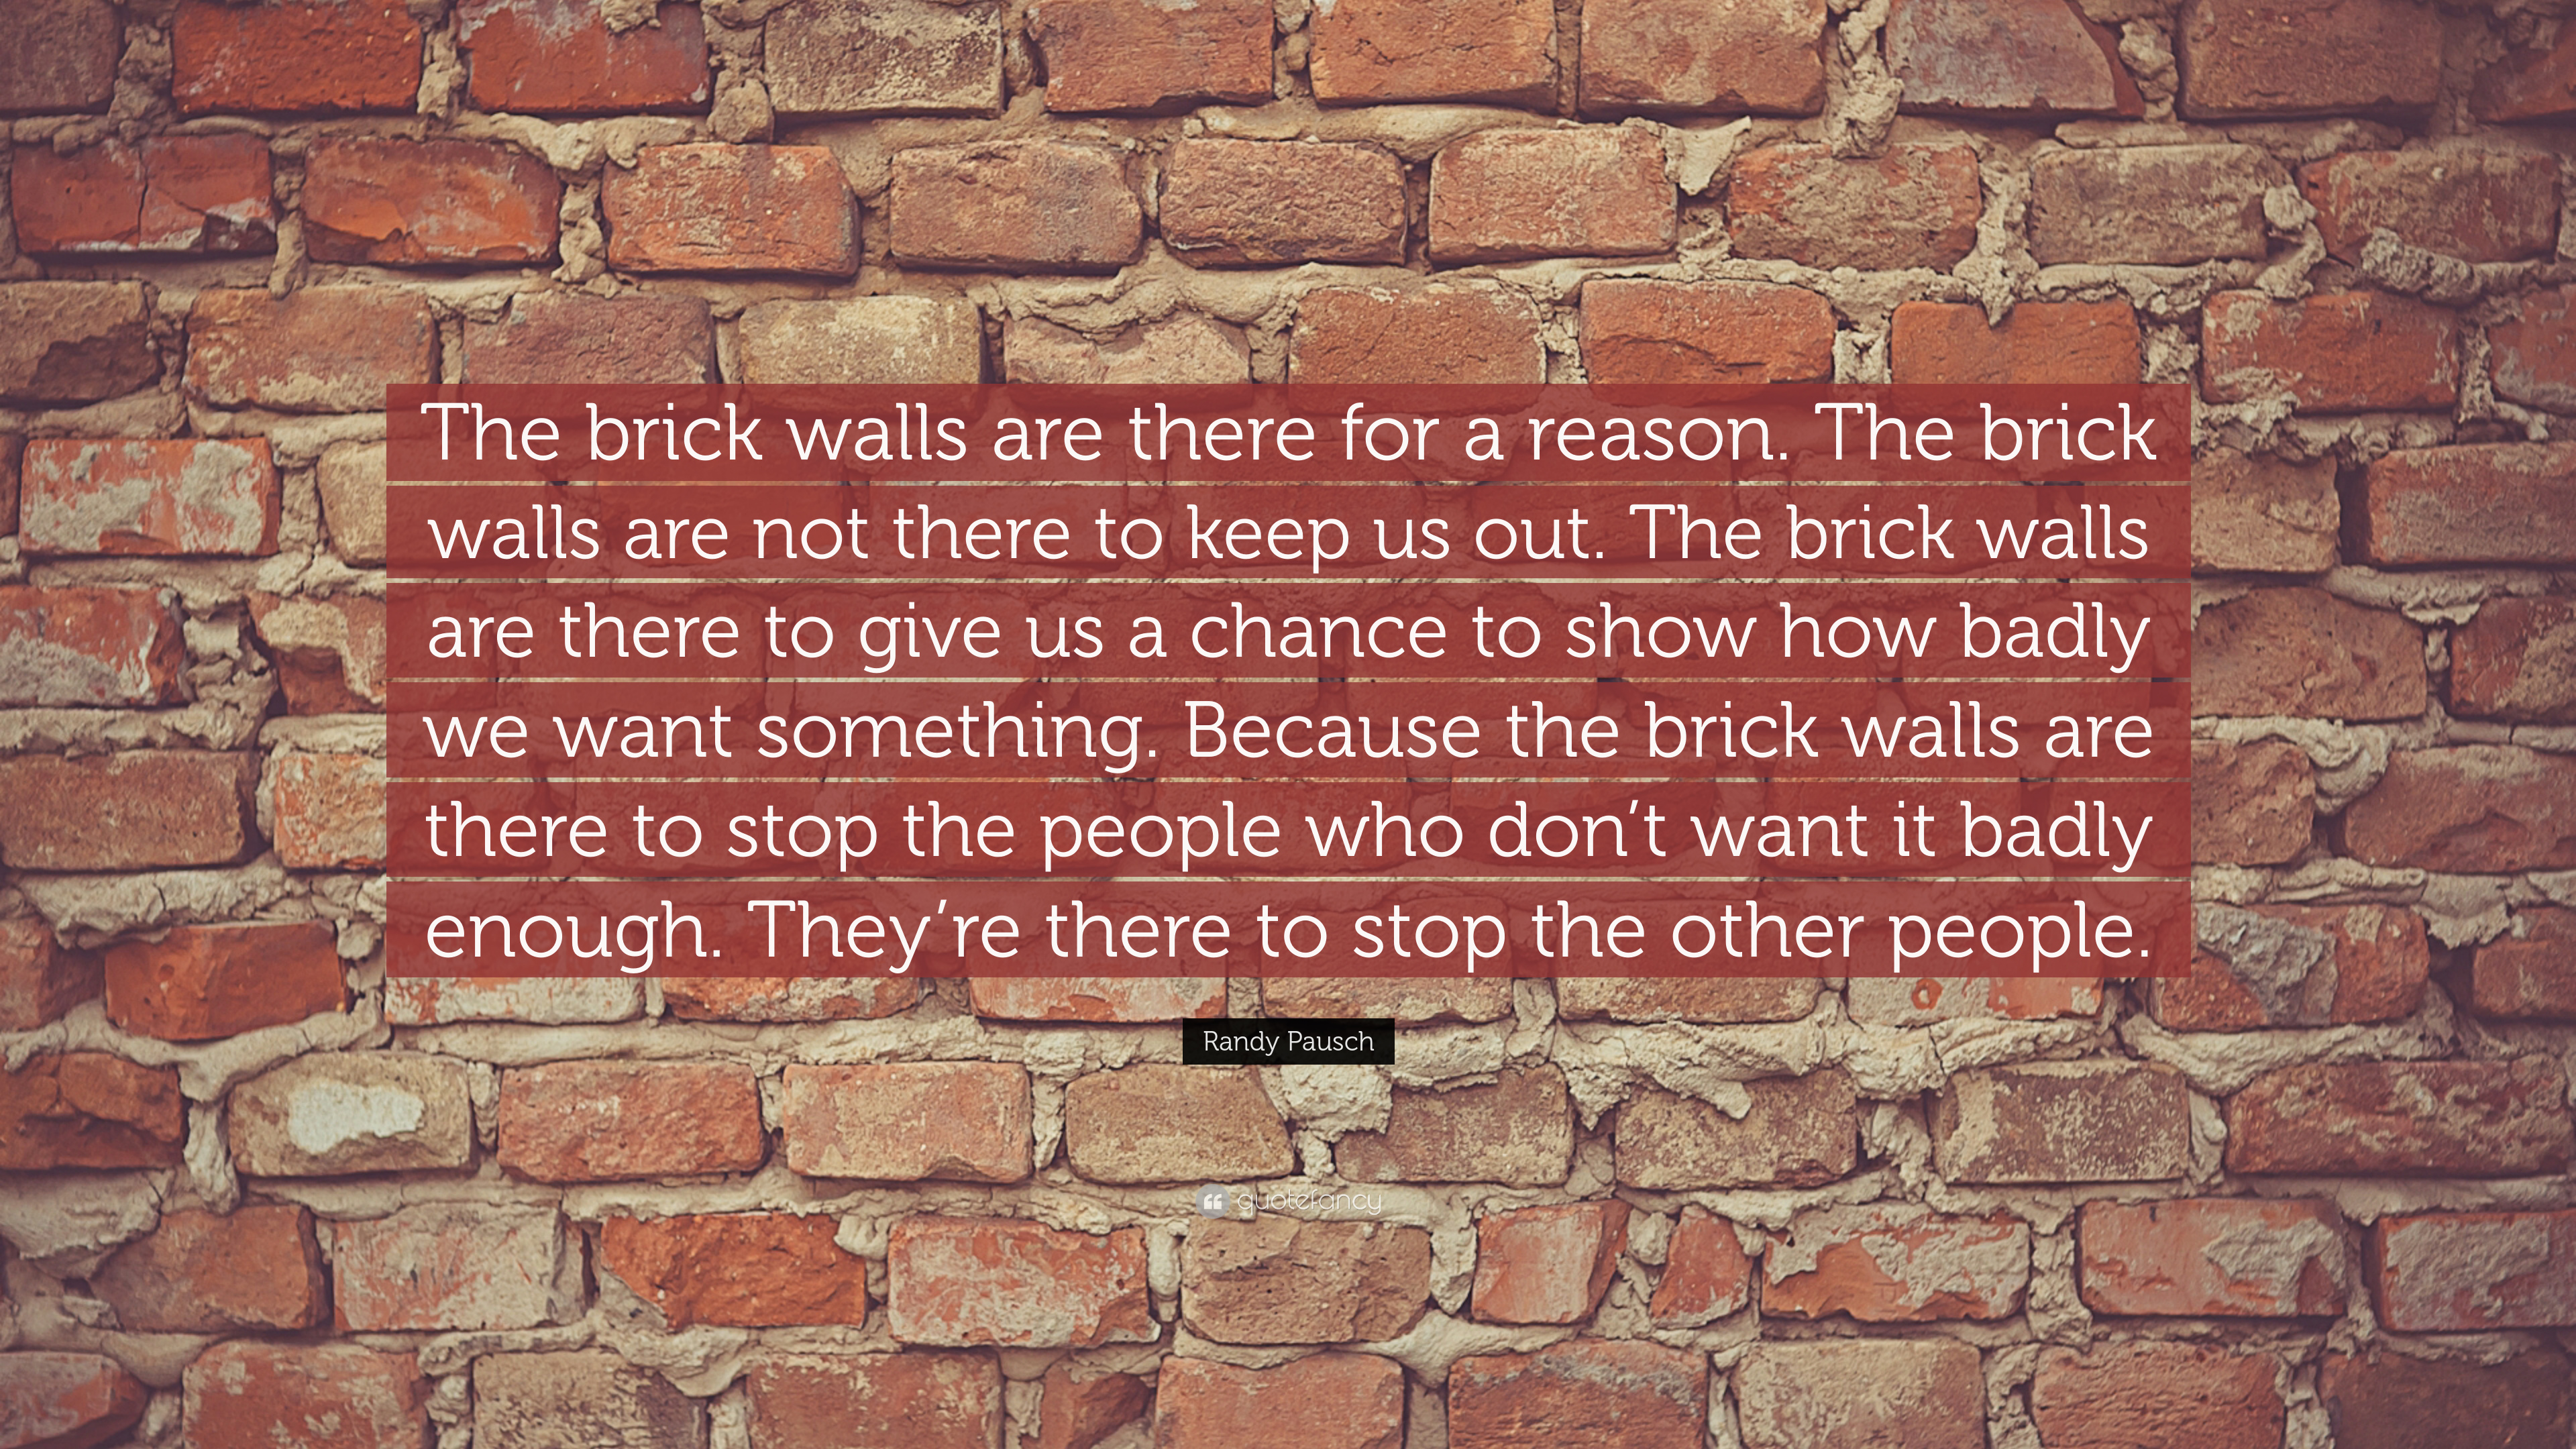 [Image] Brick Walls are there for a reason